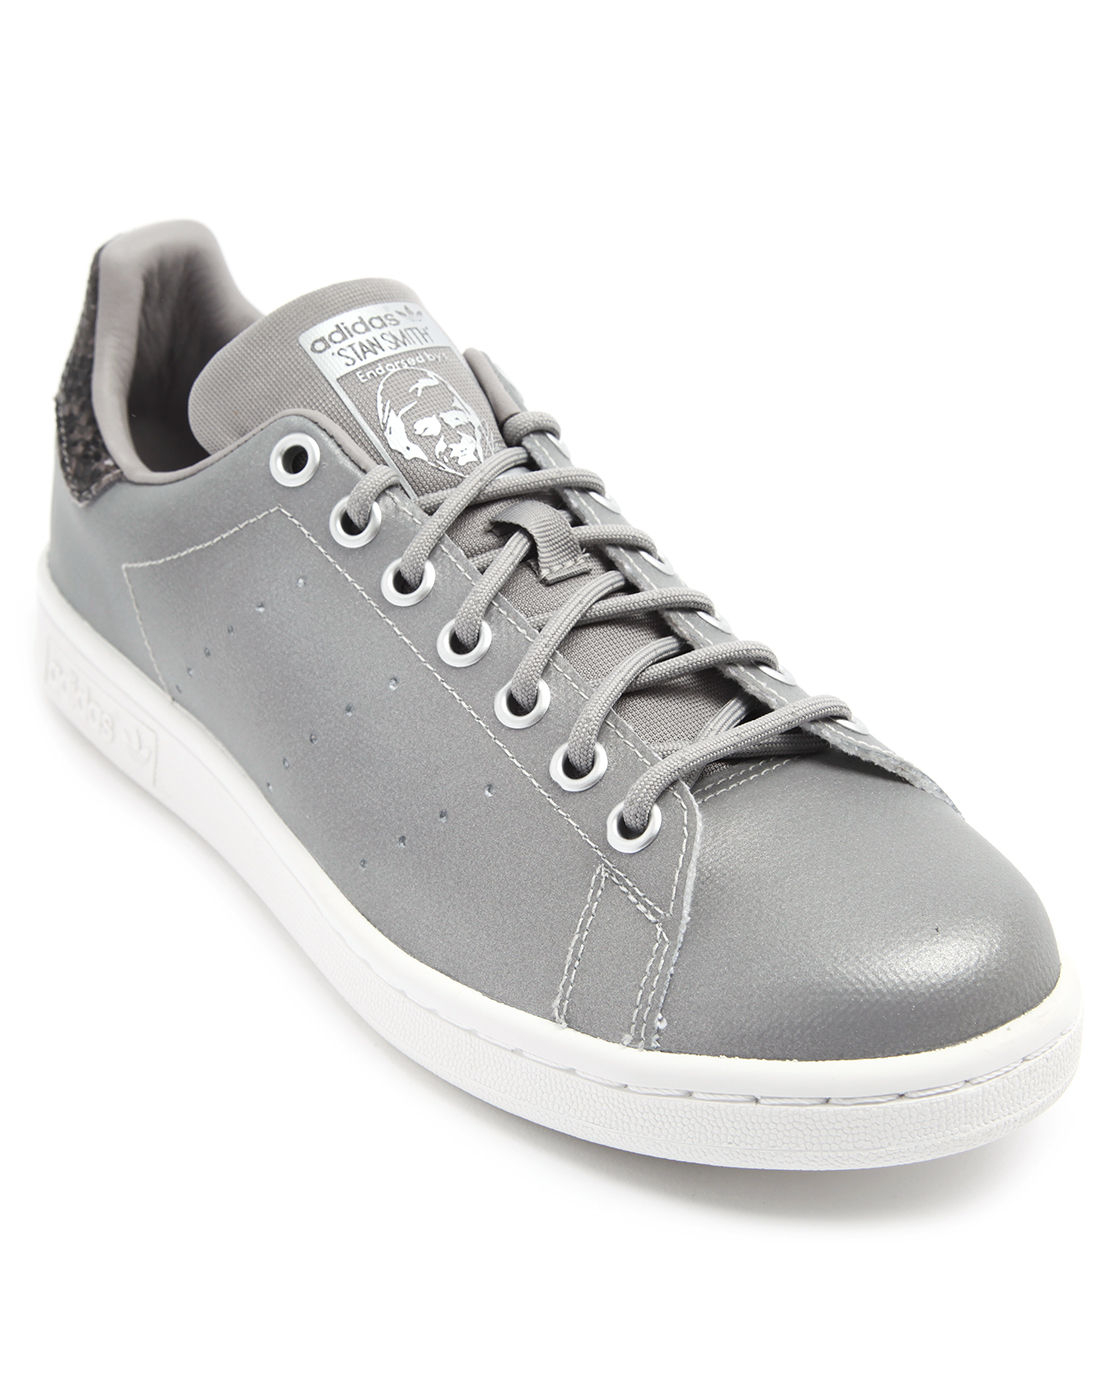 Adidas Stan Smith Reflective Silver